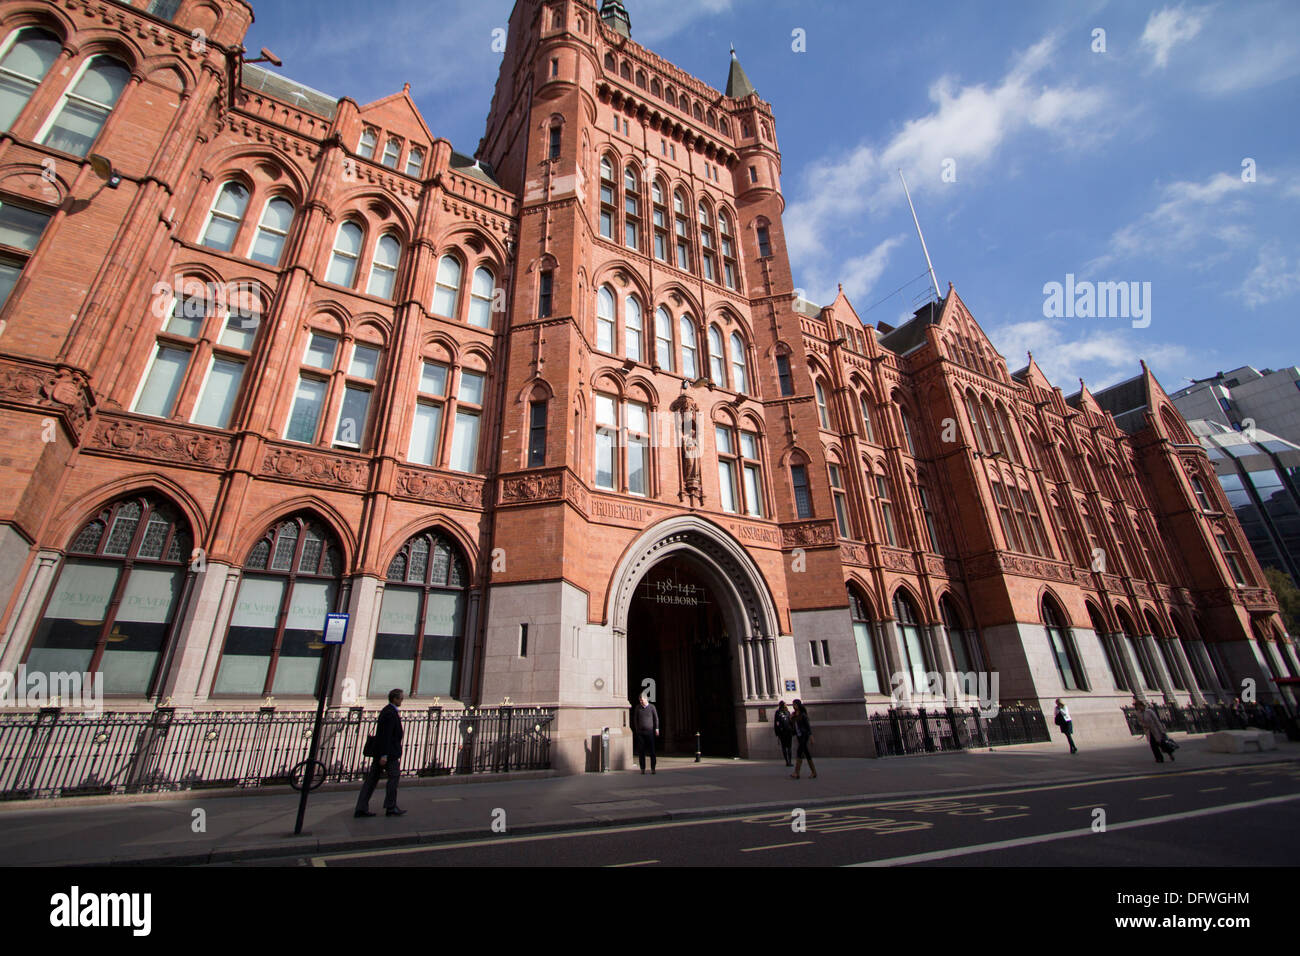 Holborn bars headquarters of Prudential insurance central London - Stock Image